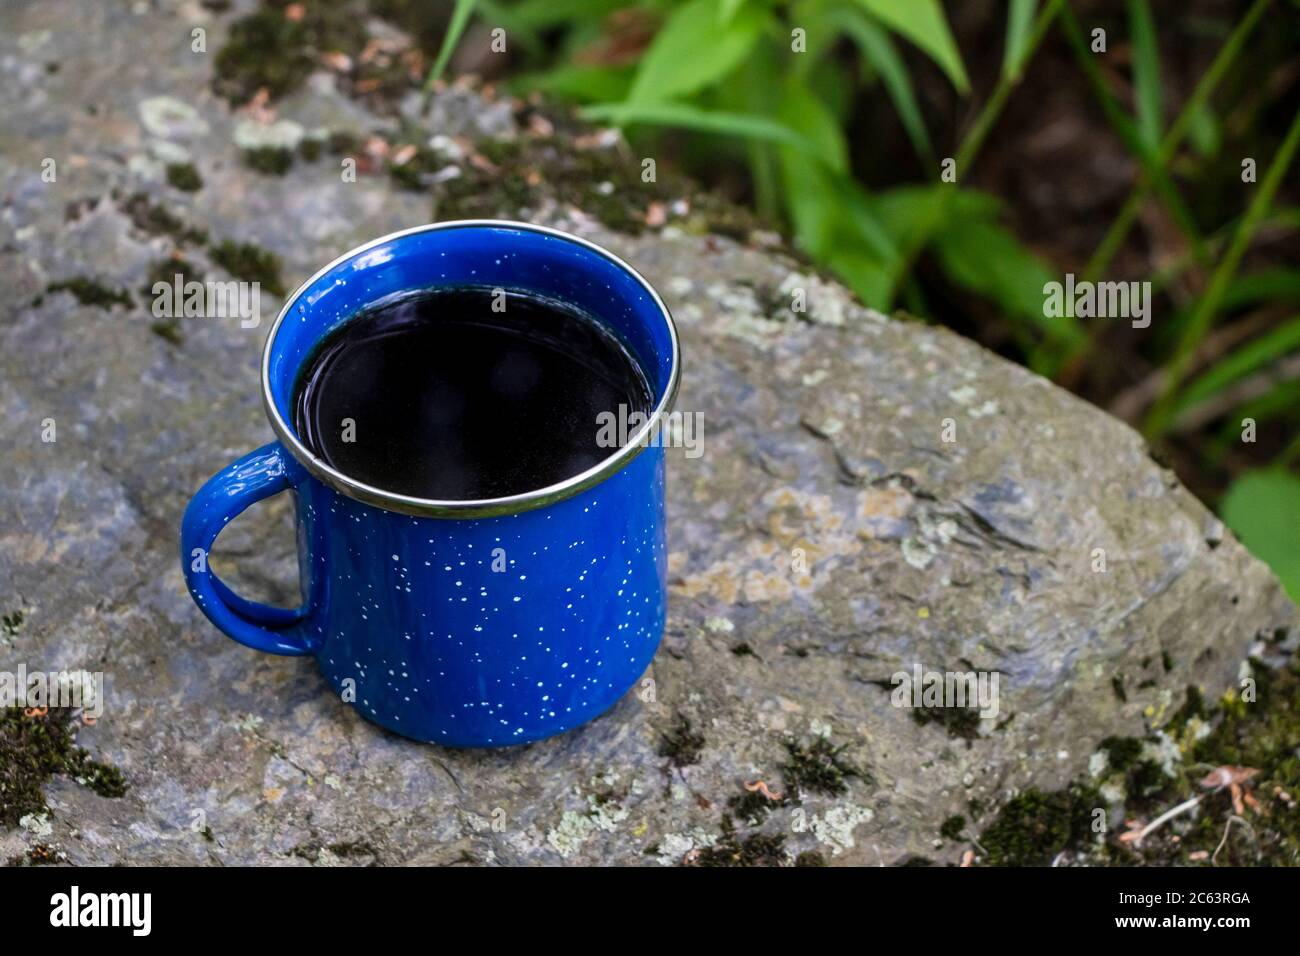 Black Coffee In A Classic Blue Enamel Camping Mug On A Stone In The Woods Stock Photo Alamy